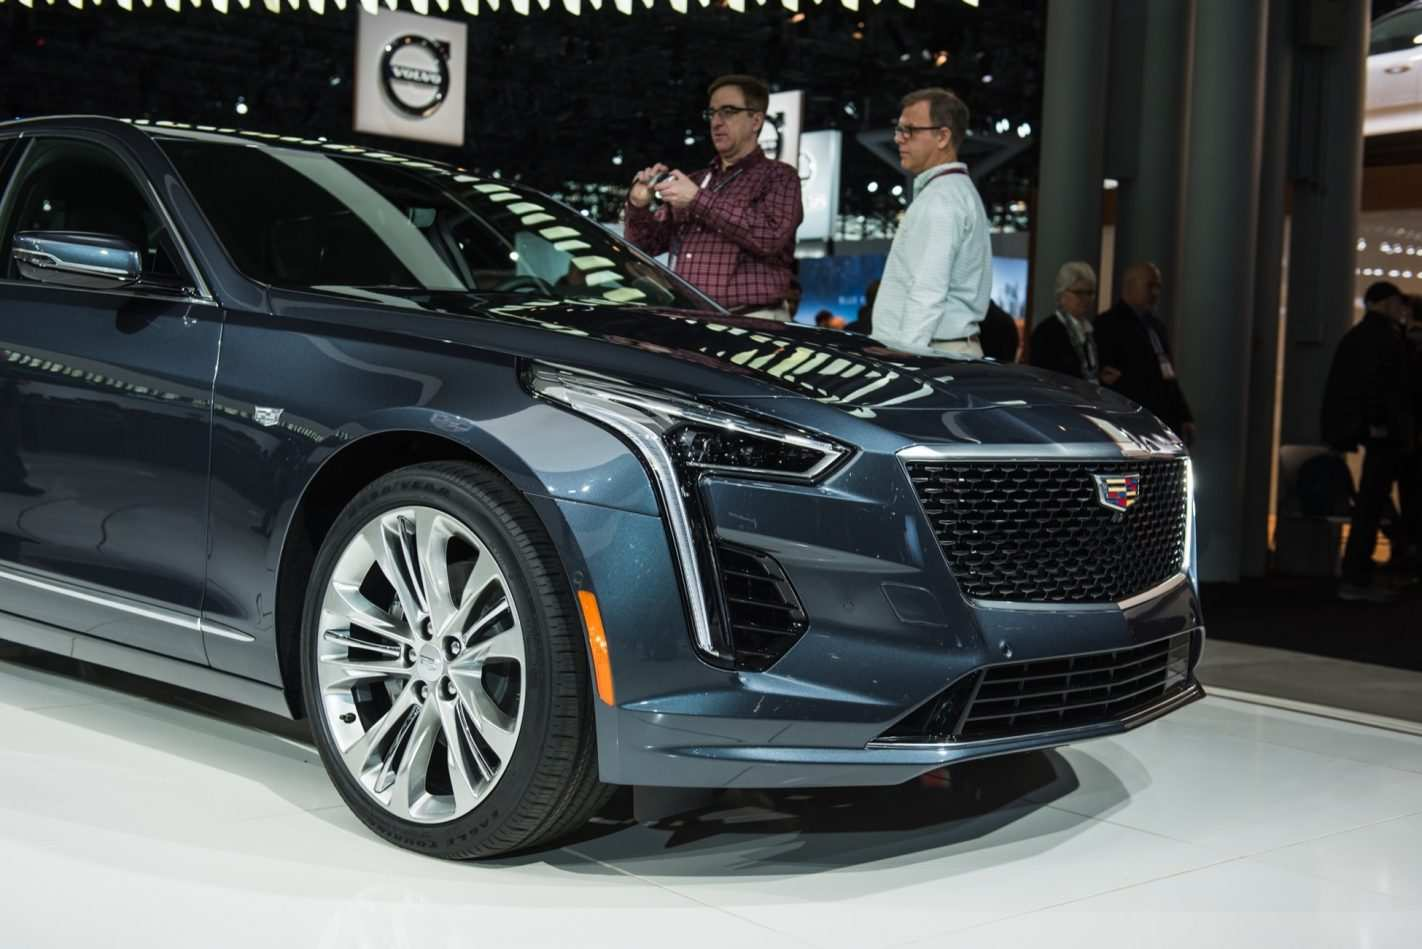 95 The Best 2019 Cadillac ELR Performance